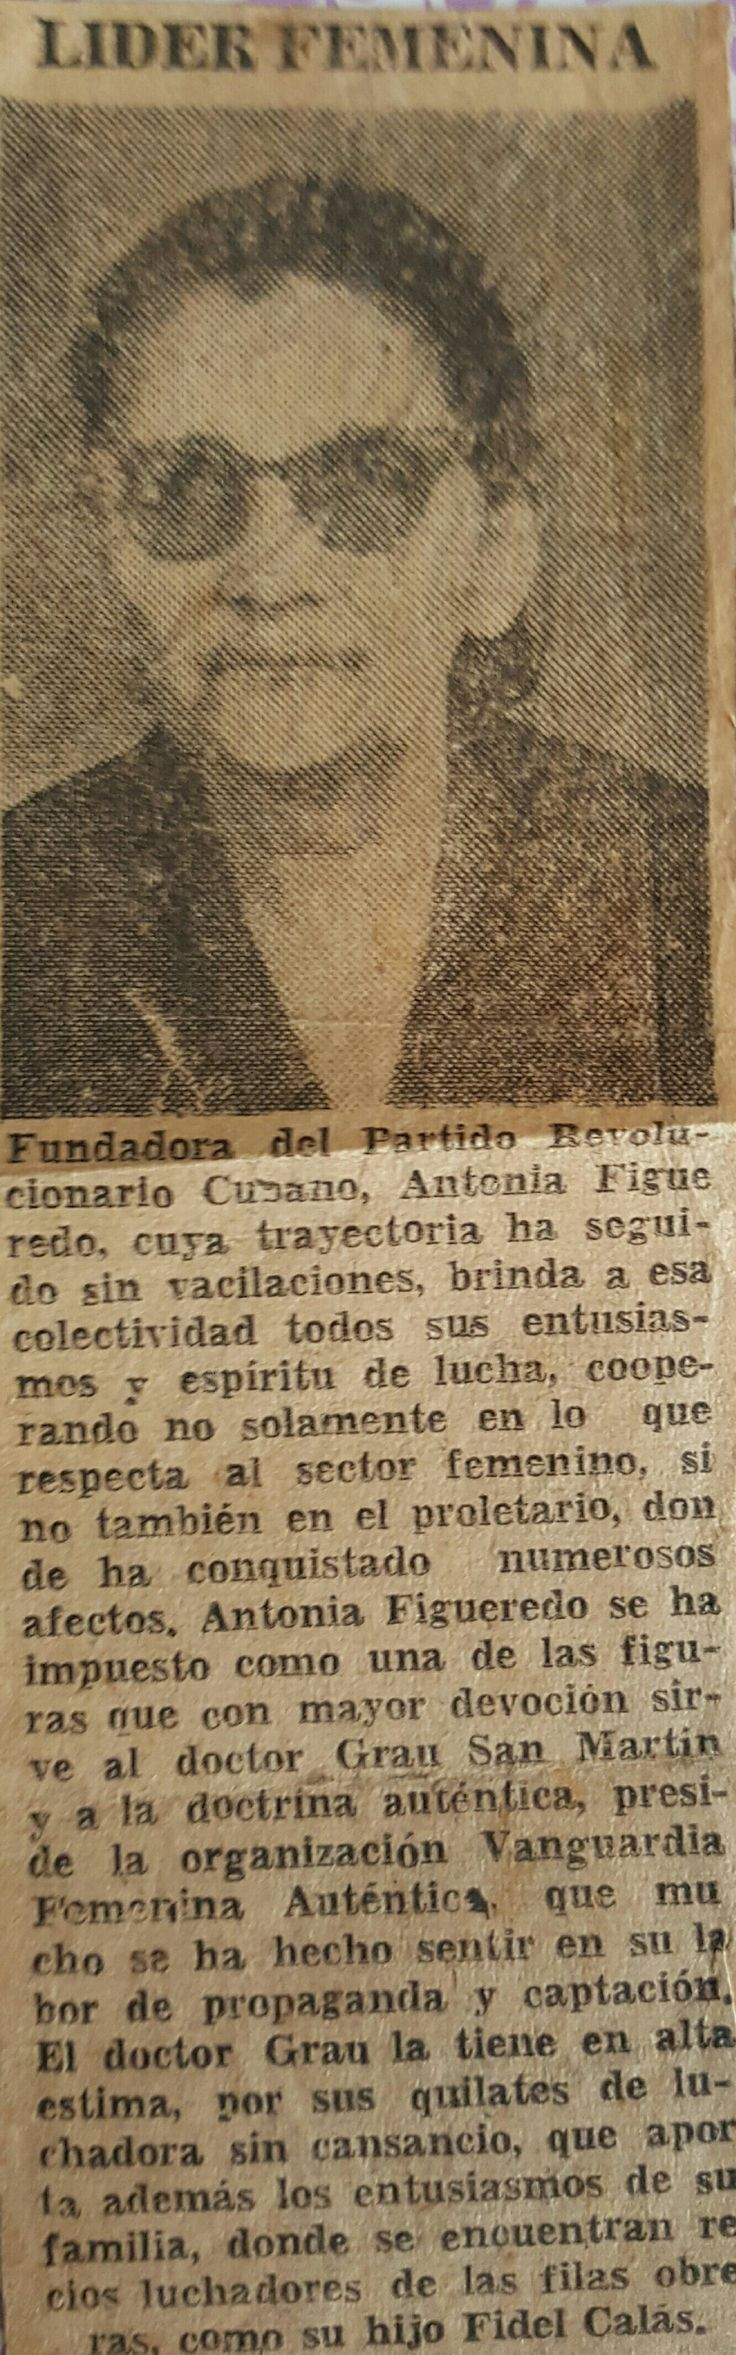 My Great Grandmother was considered in the highest regard by Dr. Grau San Martin and his political party in Cuba -Partido Revolucionaro Cubano [Autentico]. According to this article she was a foundres and a leader. The article also mentions her son, my great uncle - Fidel Calas.